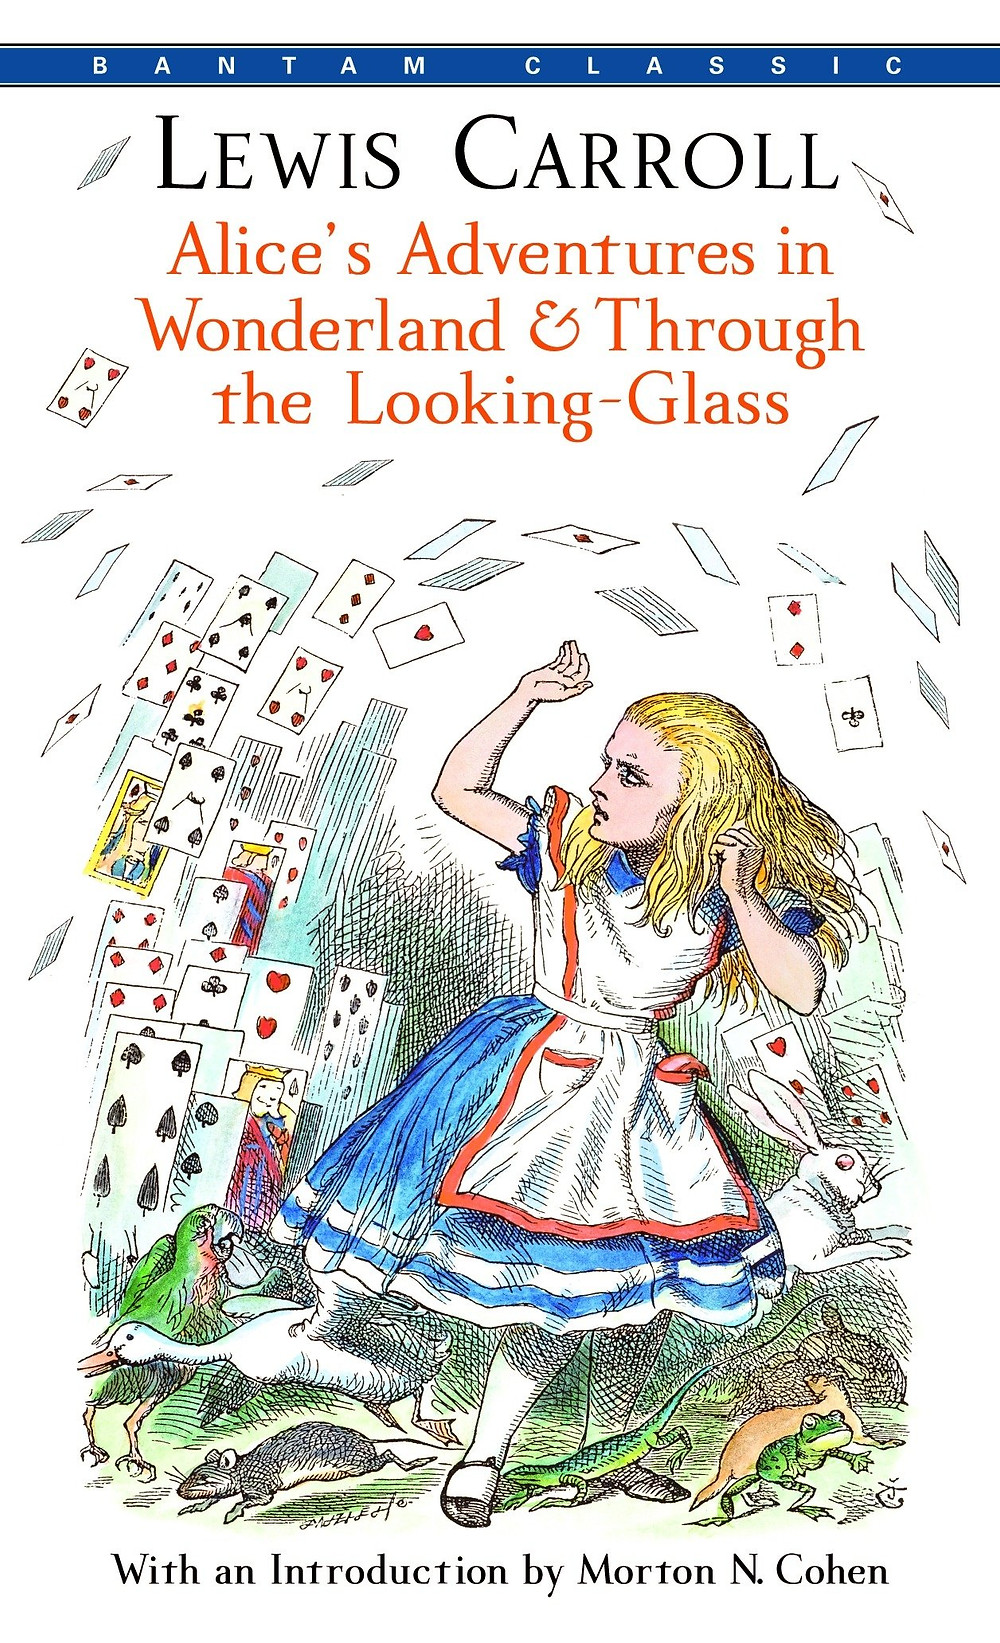 Alice's Adventures in Wonderland & Through the Looking-Glass Lewis Carroll (Author)  Anna South (Afterword by)  John Tenniel (Illustrator) Description Selected for The Great American Read, the PBS series celebrating America's 100 most-loved books. It's a warm summer's afternoon when young Alice first tumbles down the rabbit hole and into the adventures in Wonderland that have kept readers spellbound for more than 150 years. Part of the Macmillan Collector's Library; a series of stunning, clothbound, pocket sized classics with gold foiled edges and ribbon markers. These beautiful books make perfect gifts or a treat for any book lover. This edition is brought to life by Sir John Tenniel's legendary illustrations in black and white, and with an afterword by Anna South. Collected here are Lewis Carroll's two classics - Alice's Adventures in Wonderland and Through the Looking-Glass - in which Alice encounters the laconic Cheshire Cat, the anxious White Rabbit and the terrifying Red Queen, as well as a host of other outlandish and charming characters. bookslut, thebookslut.com, Publisher MacMillan Collector's Library Publish Date April 26, 2016 Pages 288 Dimensions 3.9 X 0.7 X 6.0 inches | 0.4 pounds Language English Type Hardcover EAN/UPC 9781909621572 BISAC Categories: Classics Literary General Classics Classics